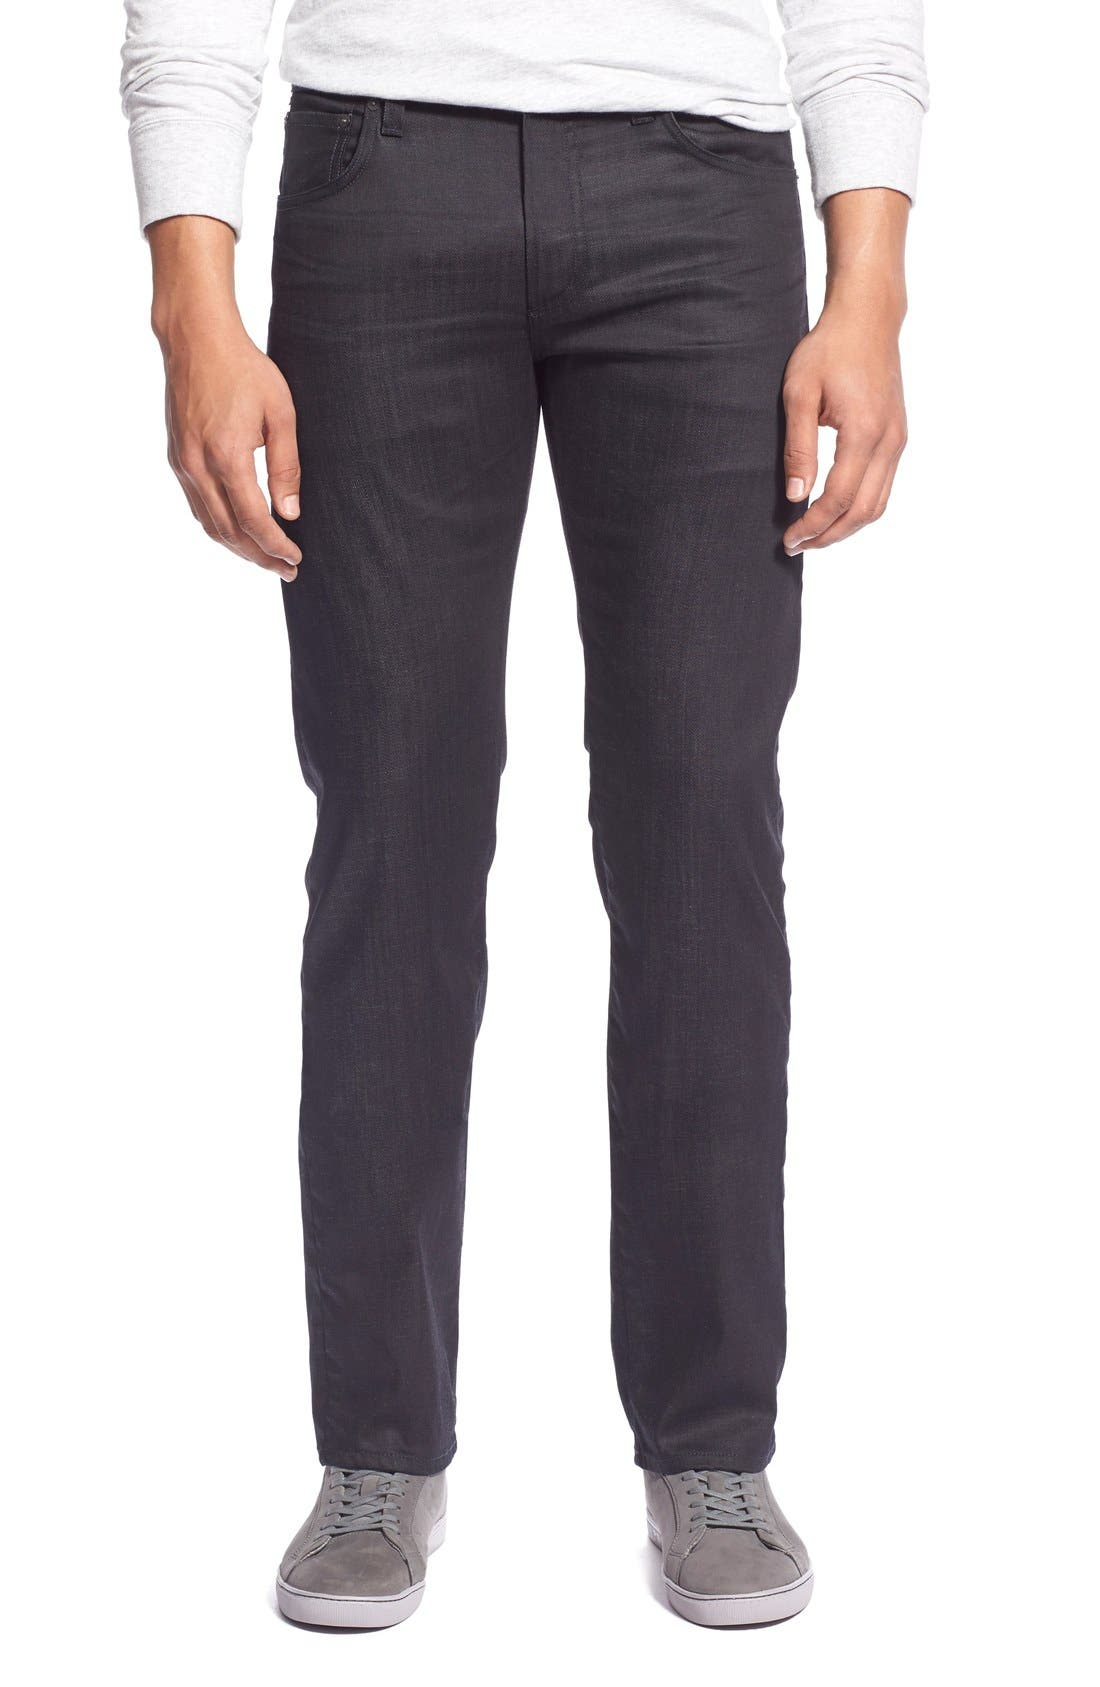 'Core' Slim Fit Jeans,                         Main,                         color, Prestige